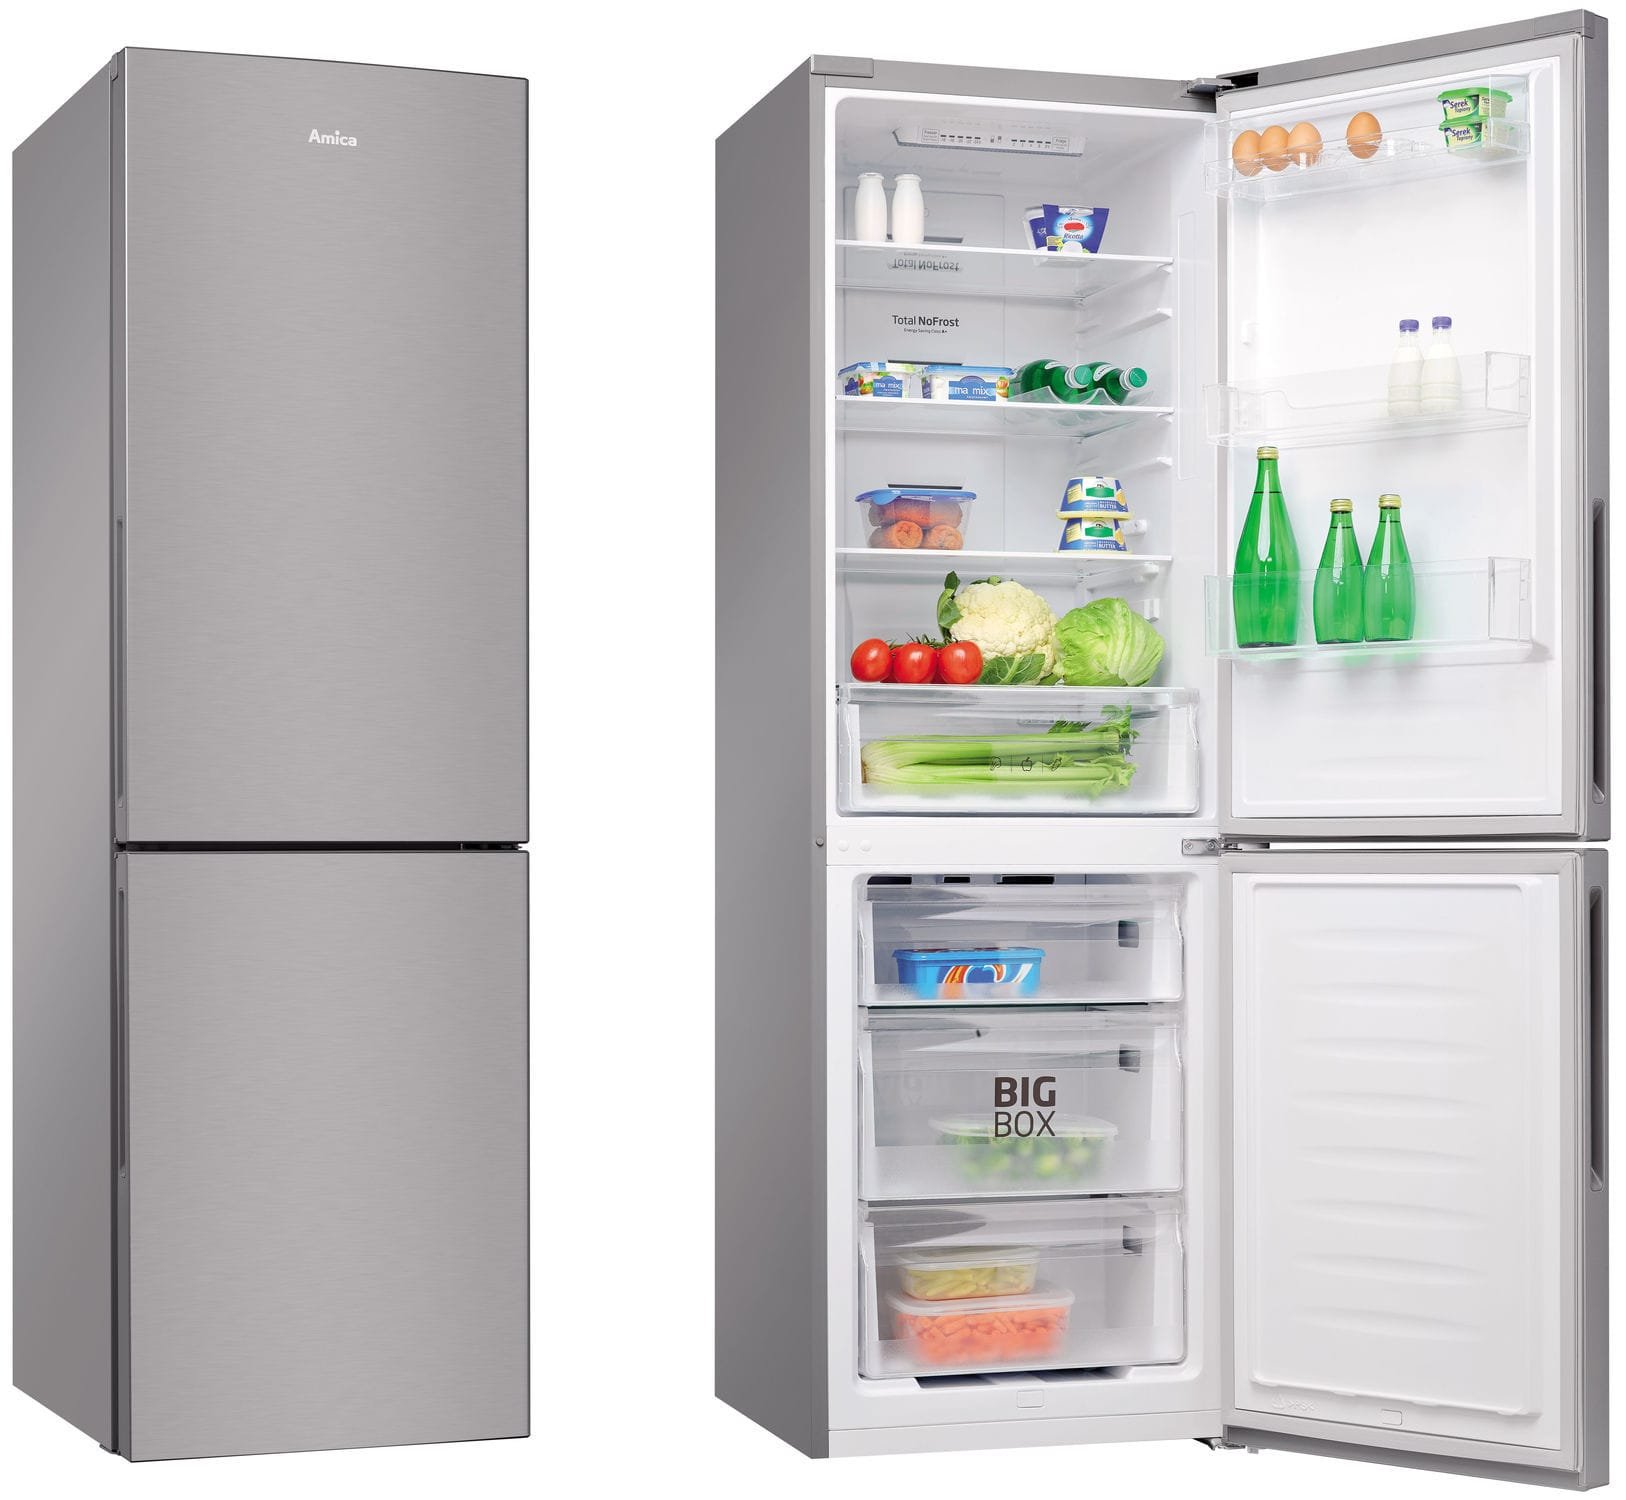 Residential Refrigerator Freezer / Double Door / Bottom Freezer   FK332.4FX